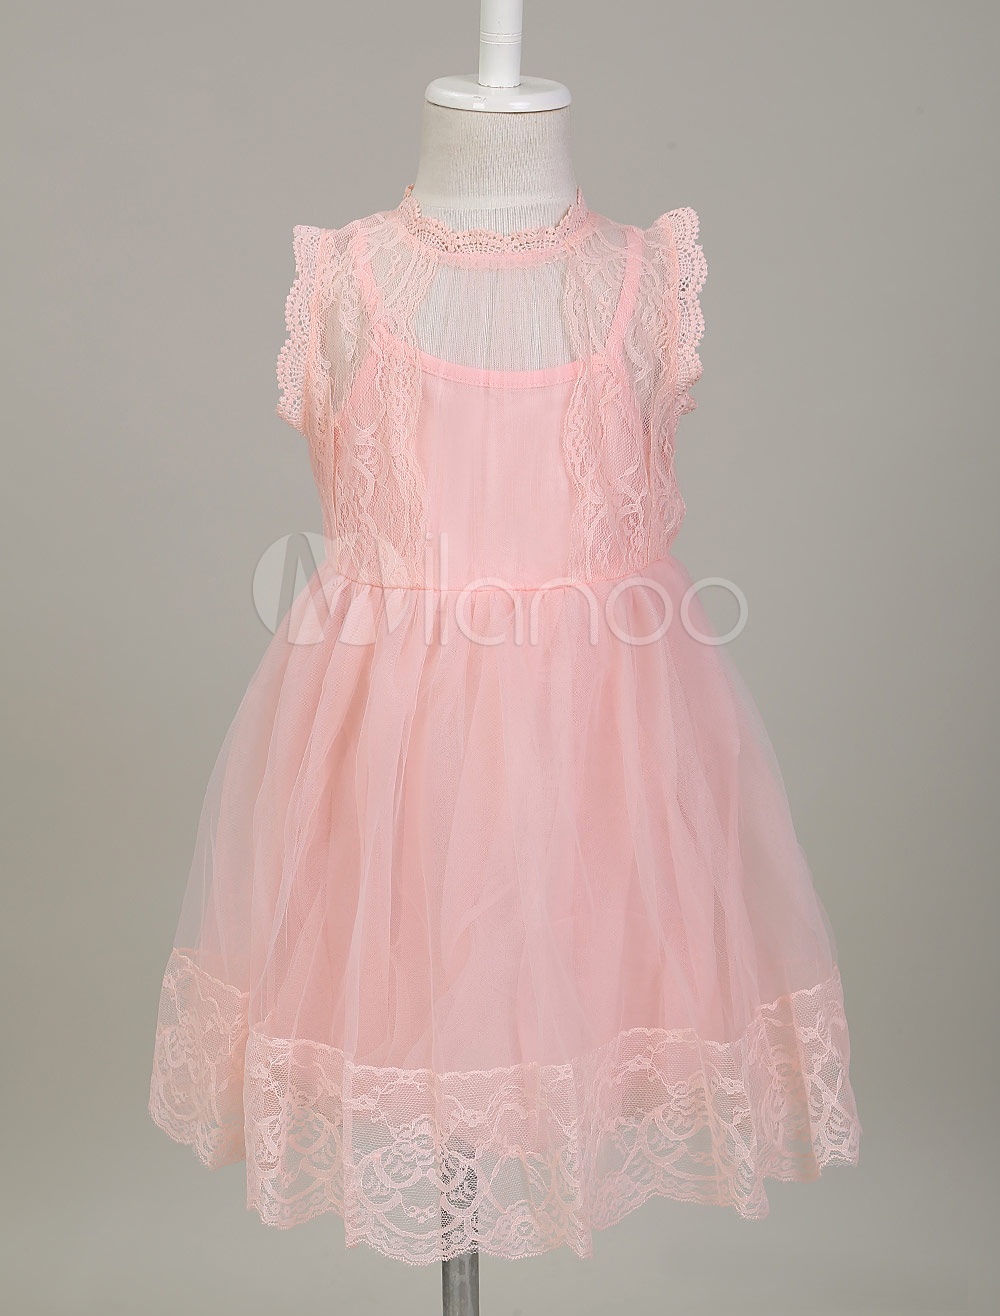 Buy Flower Girl Dresses Soft Pink Lace Princess Tutu Dress Illusion Knee Length Kids Social Party Dress for $16.09 in Milanoo store